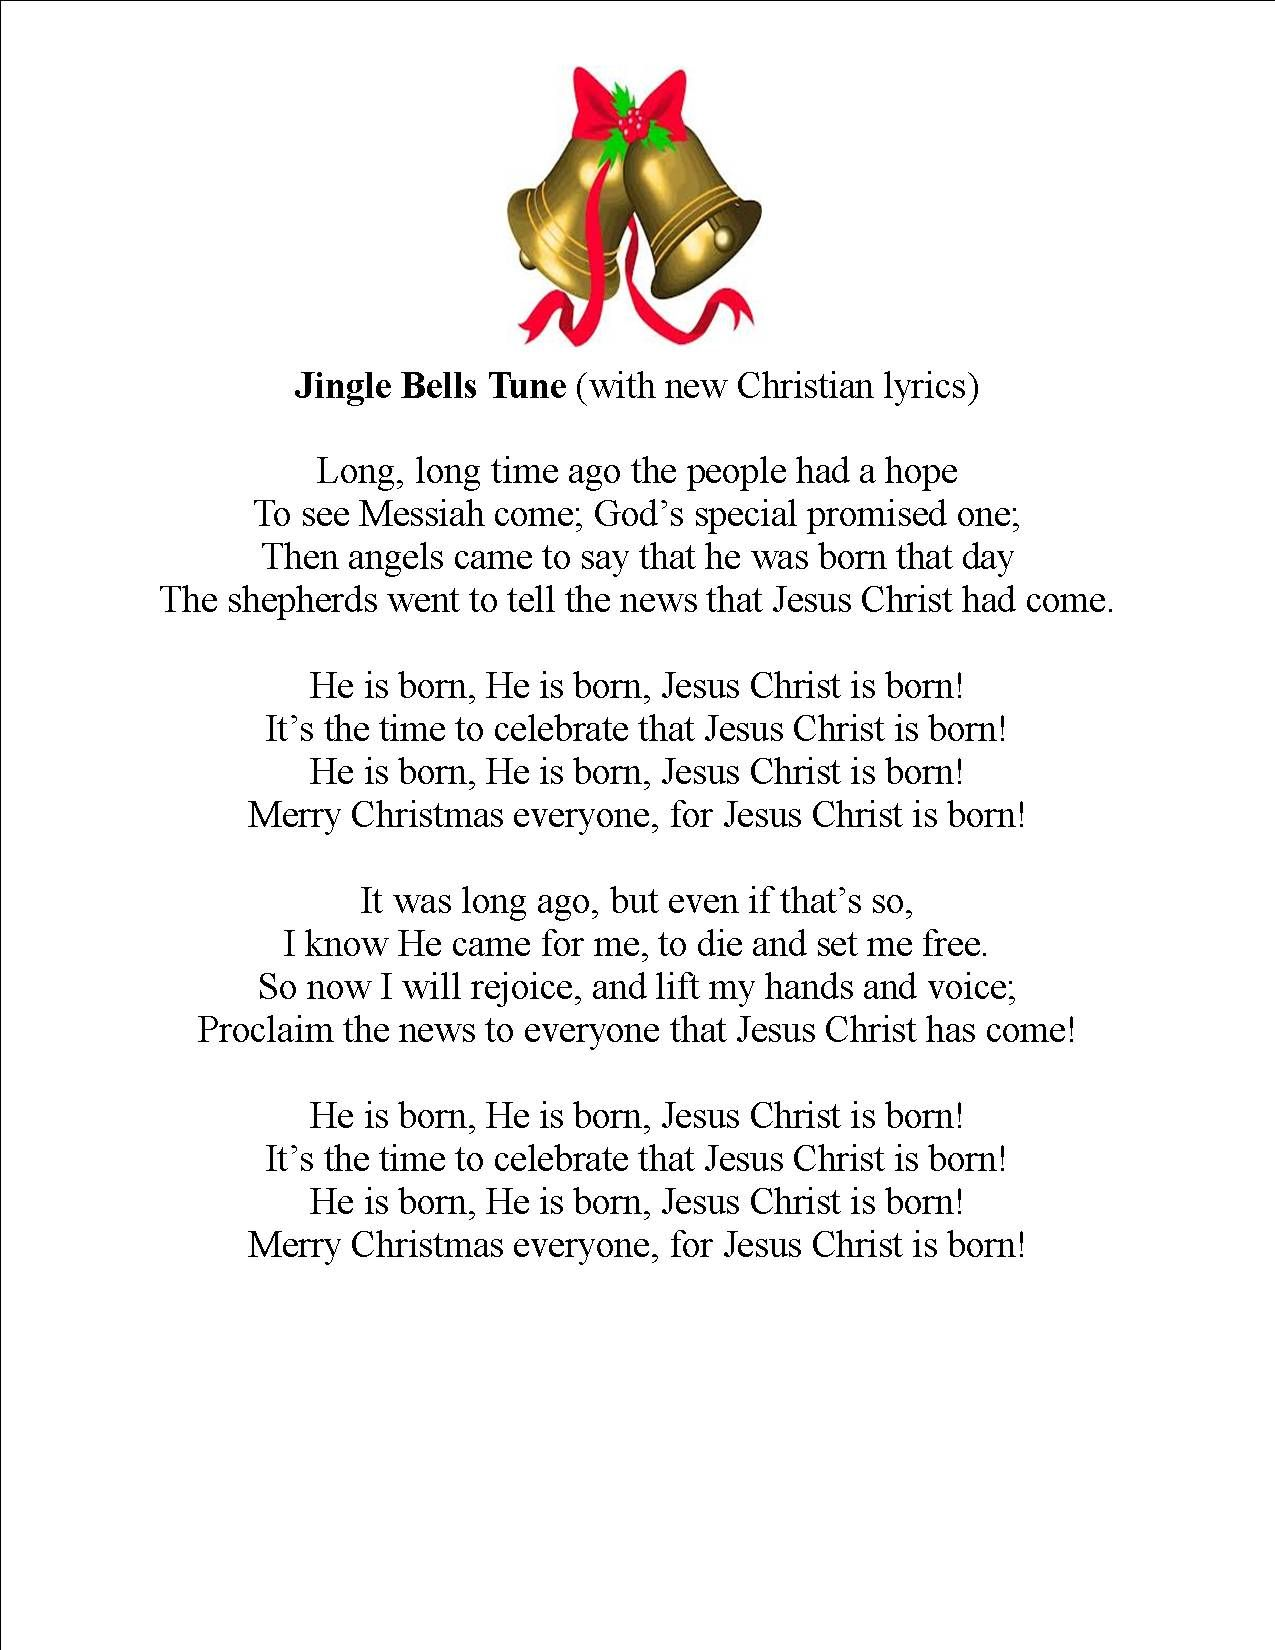 Christmas poems for church programs - New Lyrics To The Popular Tune Of Jingle Bells I Wrote This For My Church S Children S Choir To Sing At The Christmas Program